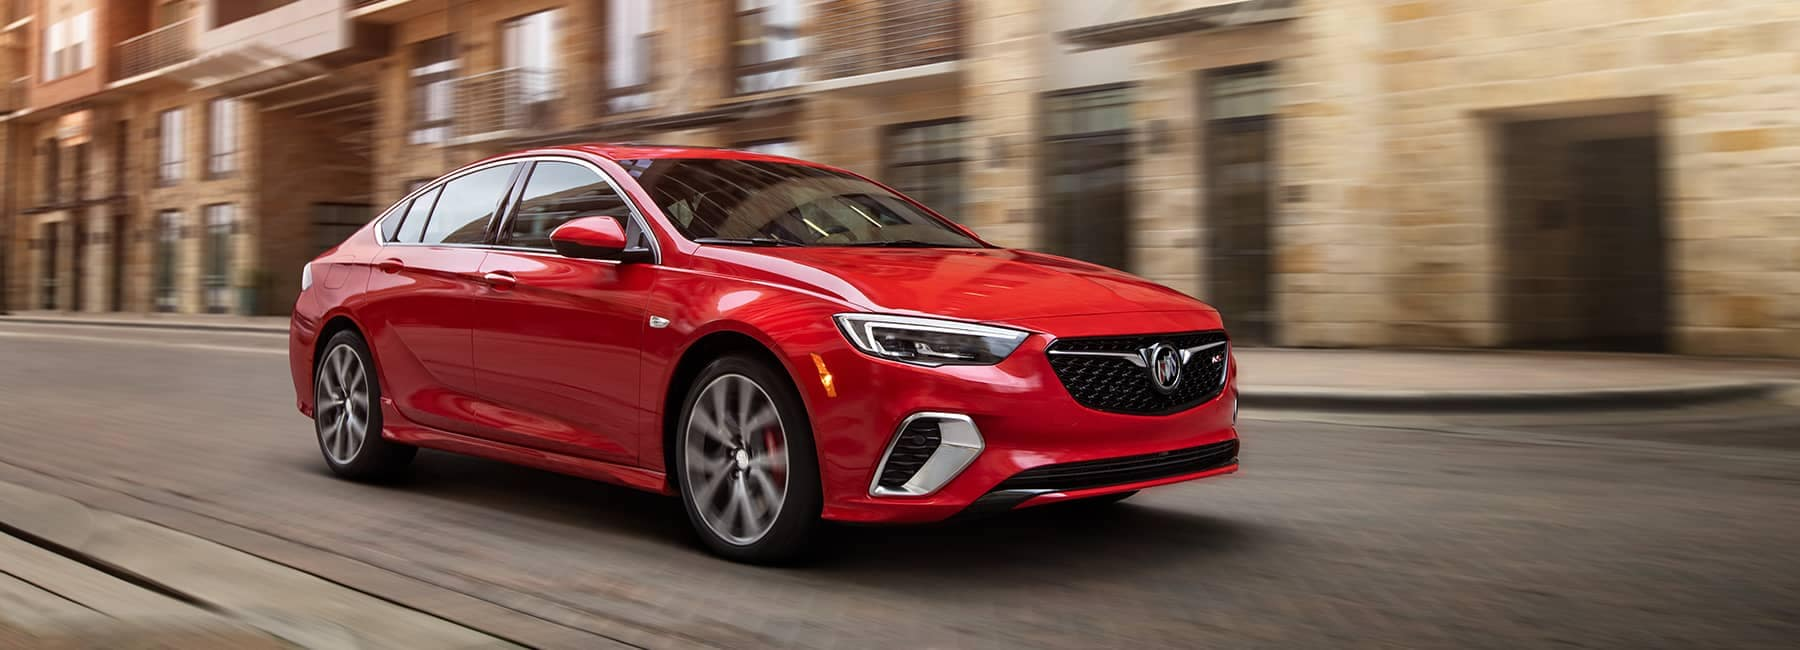 Red 2020 Buick Regal Sportback cruising down the street